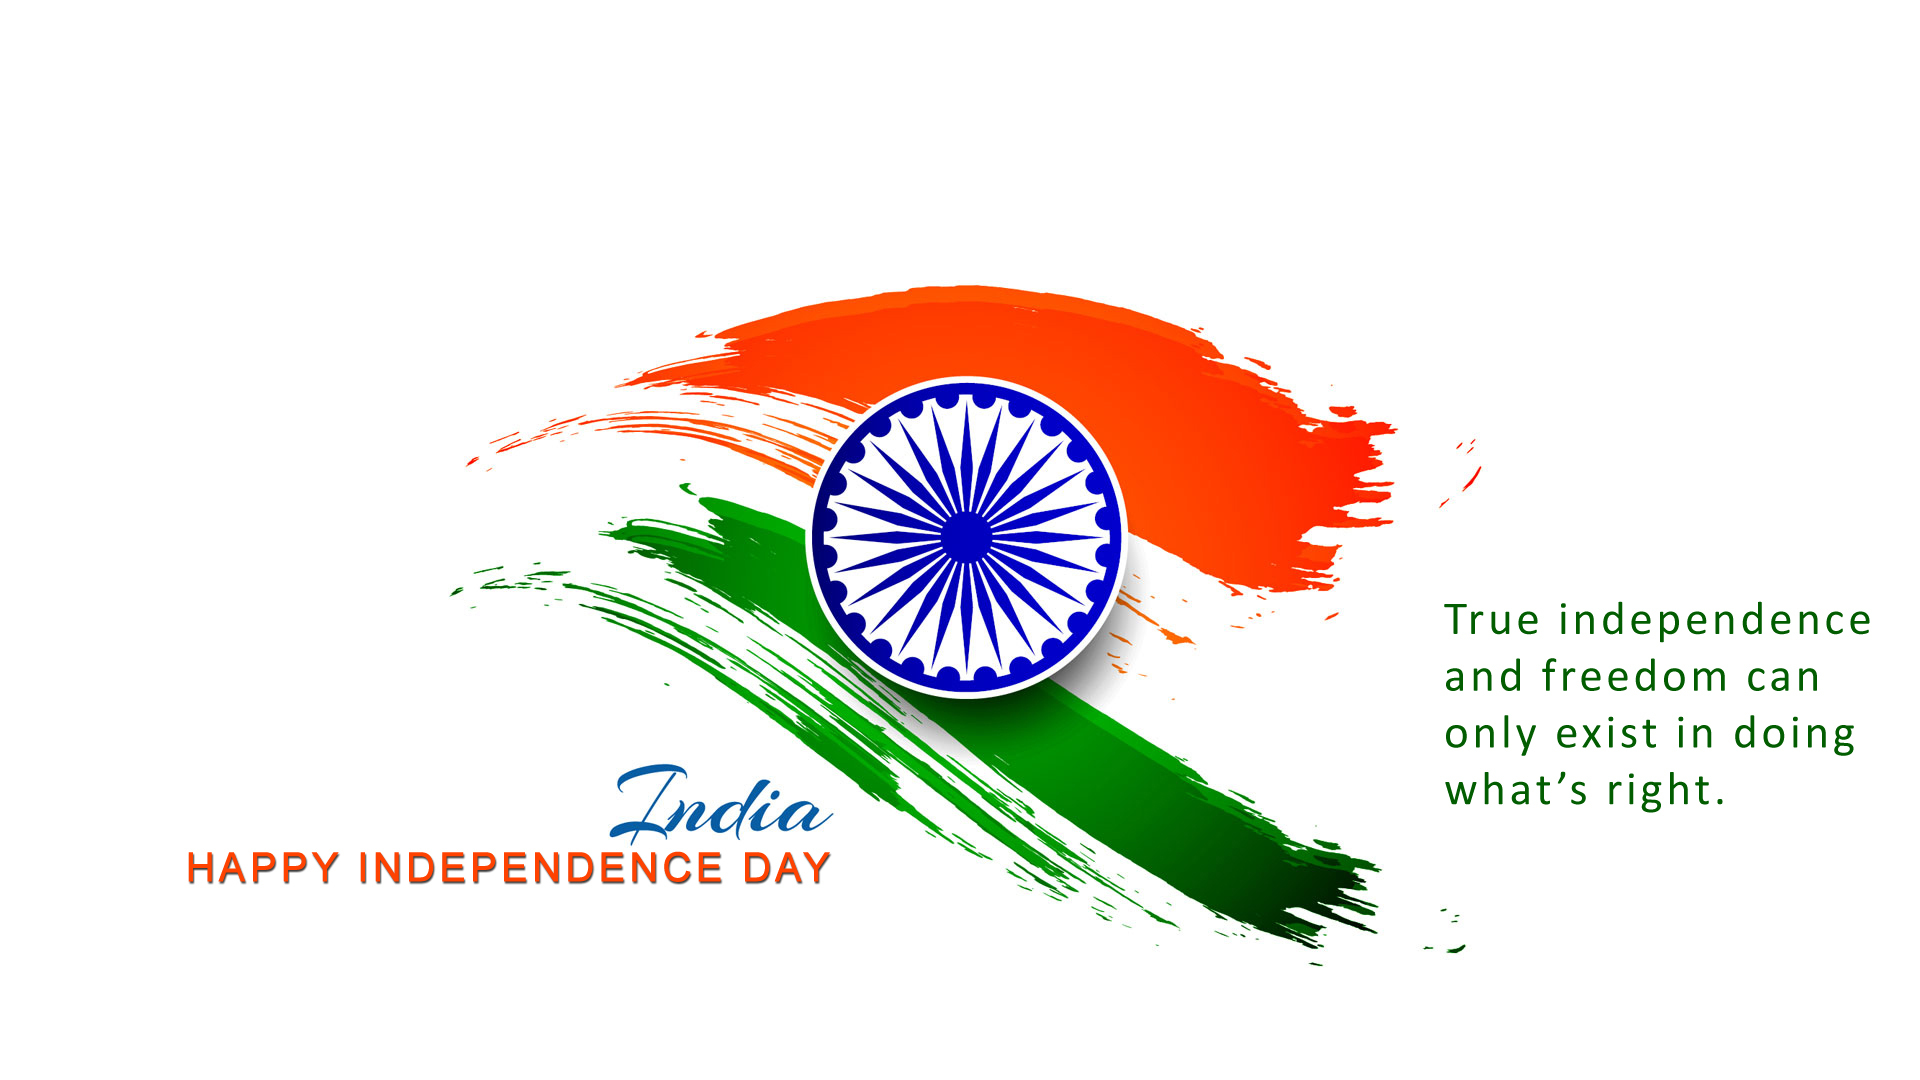 Day Happy Hd Indpeneence: Happy Independence Day Greetings HD Wallpaper